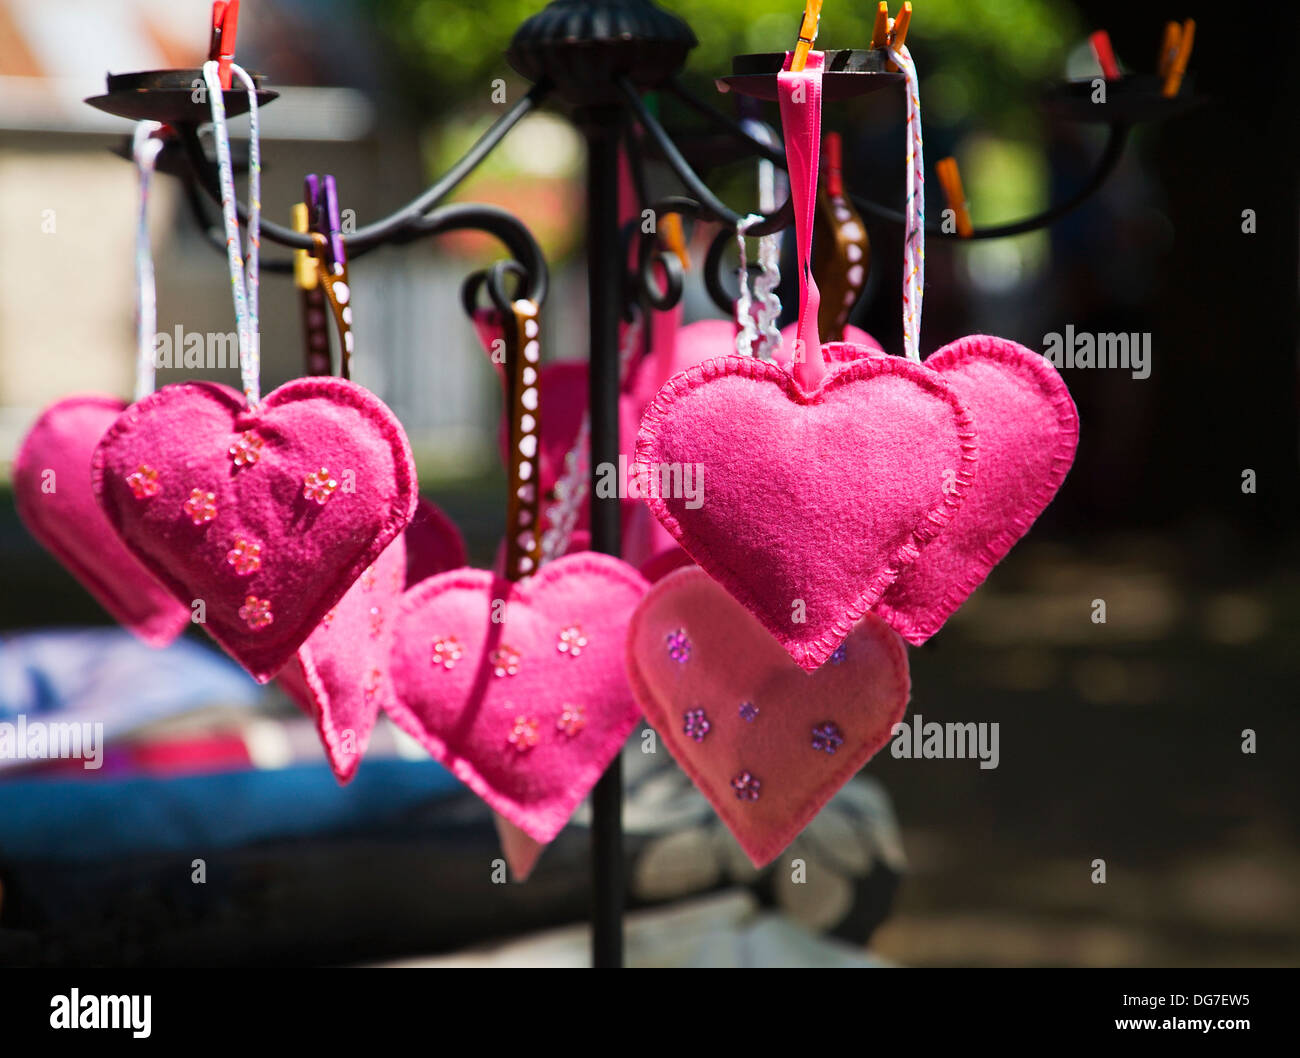 Pink felt pin cushion hearts displayed for sale at a craft market stall. - Stock Image